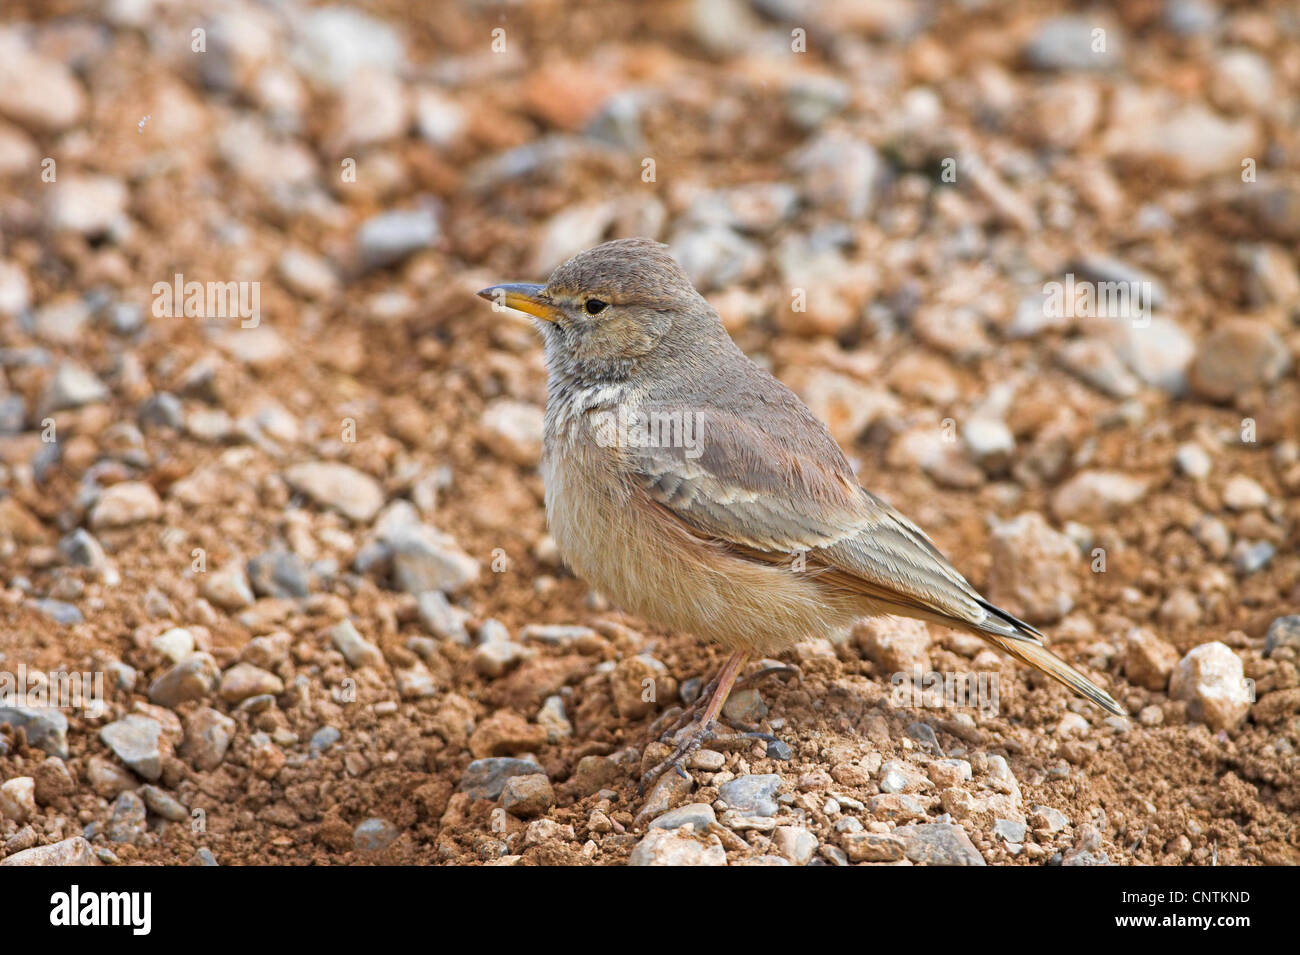 desert lark (Ammomanes deserti), on stony ground, Morocco - Stock Image